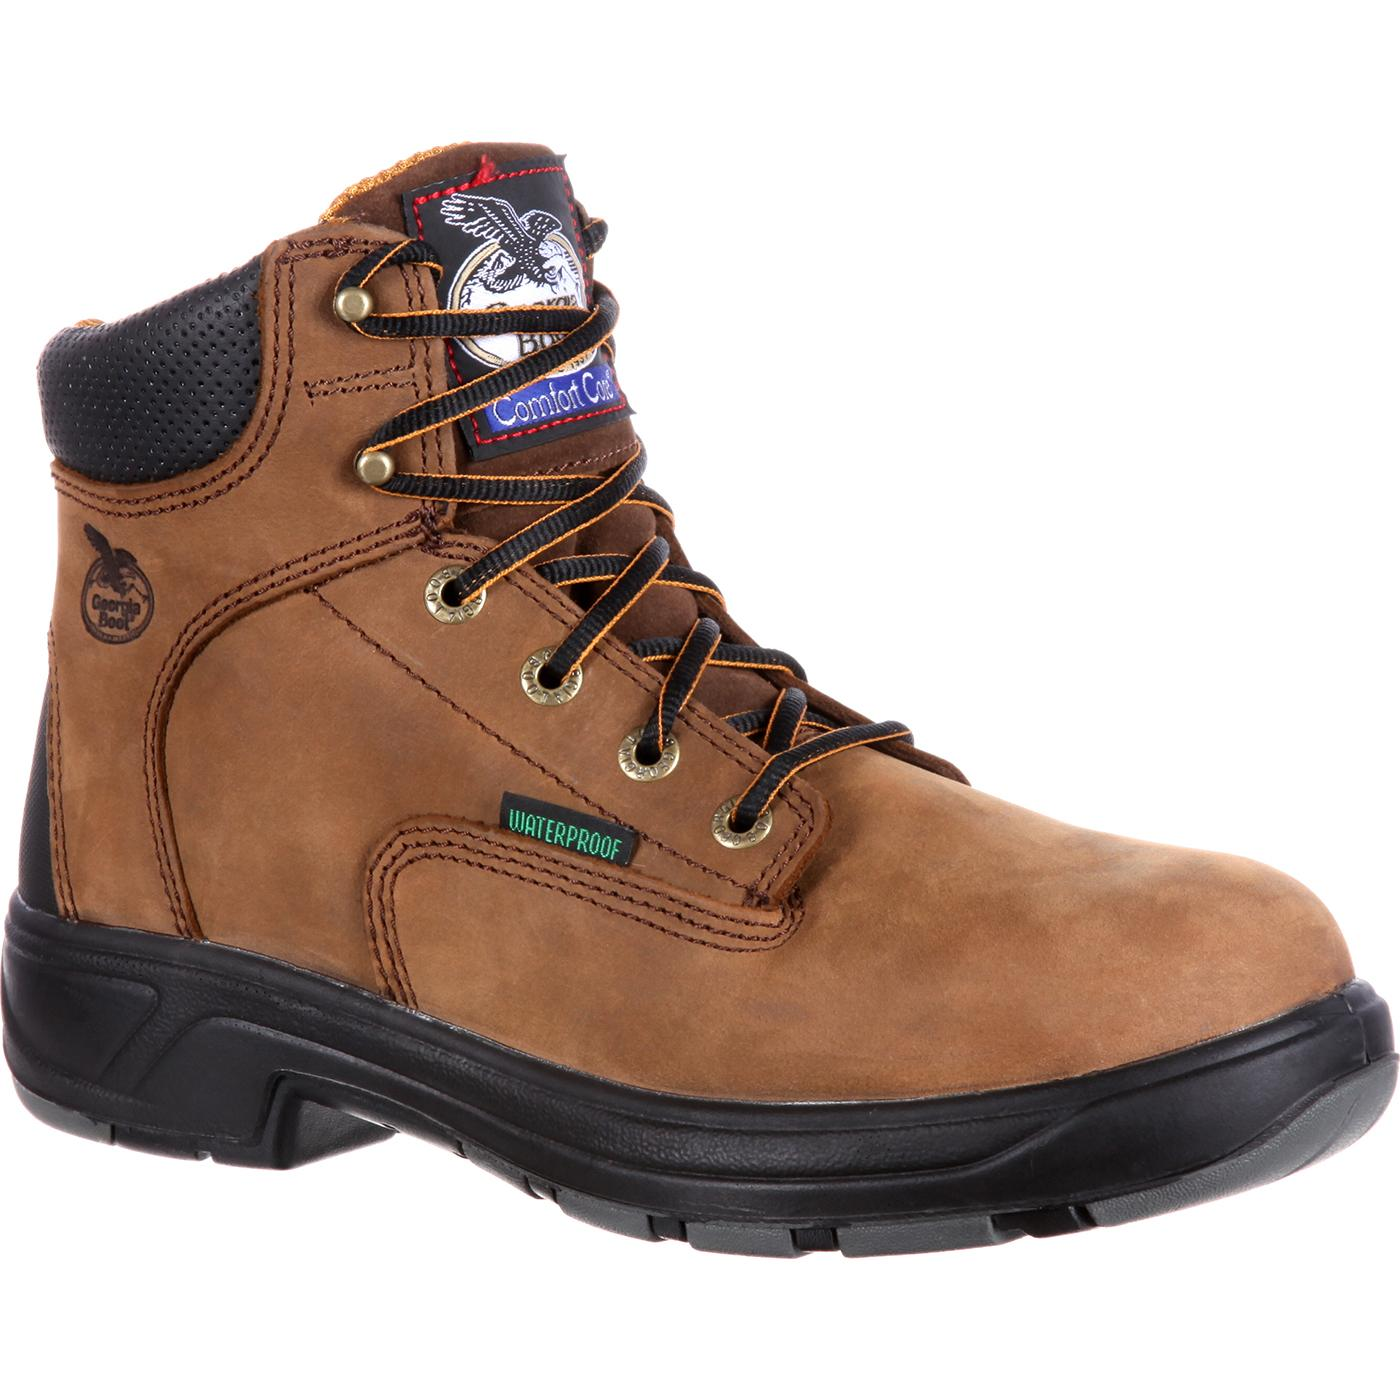 promo code a56dd 8d51a Georgia Boot FLXpoint Composite Toe Waterproof Work Boot, , large